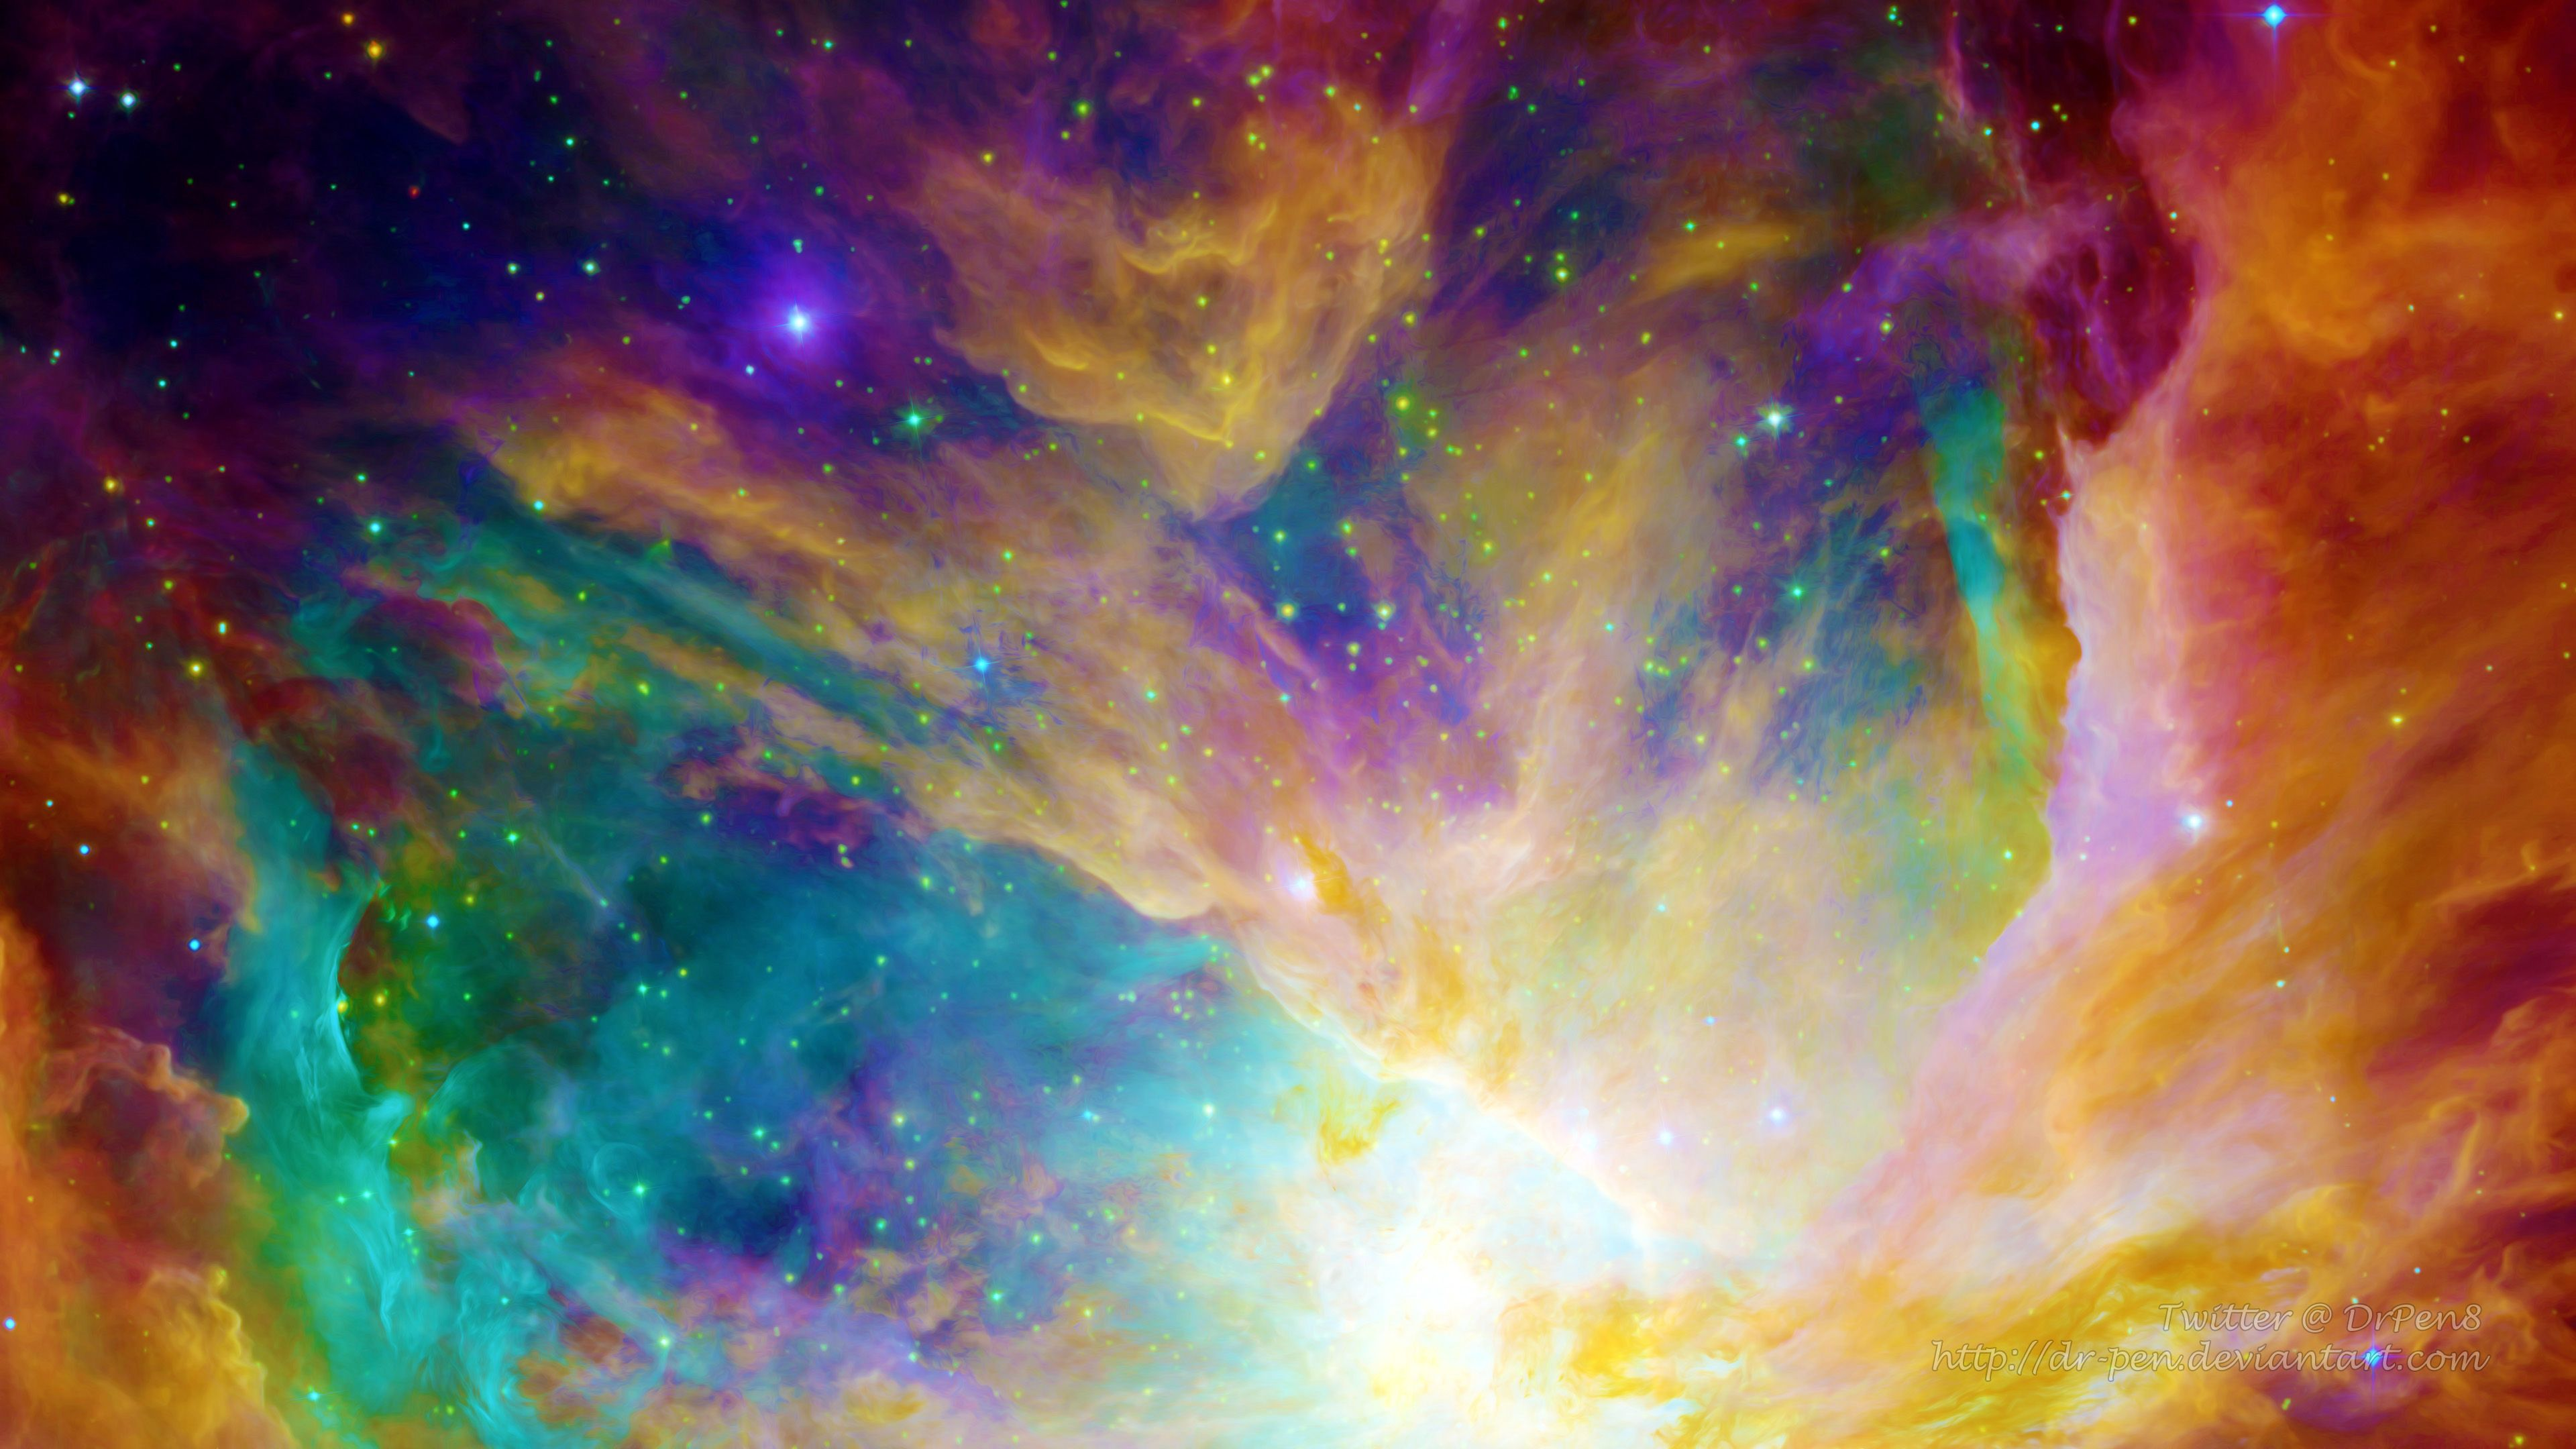 3840x2160 Rainbow Nebula - Photomanipulated Wallpaper 4k Ultra HD ...